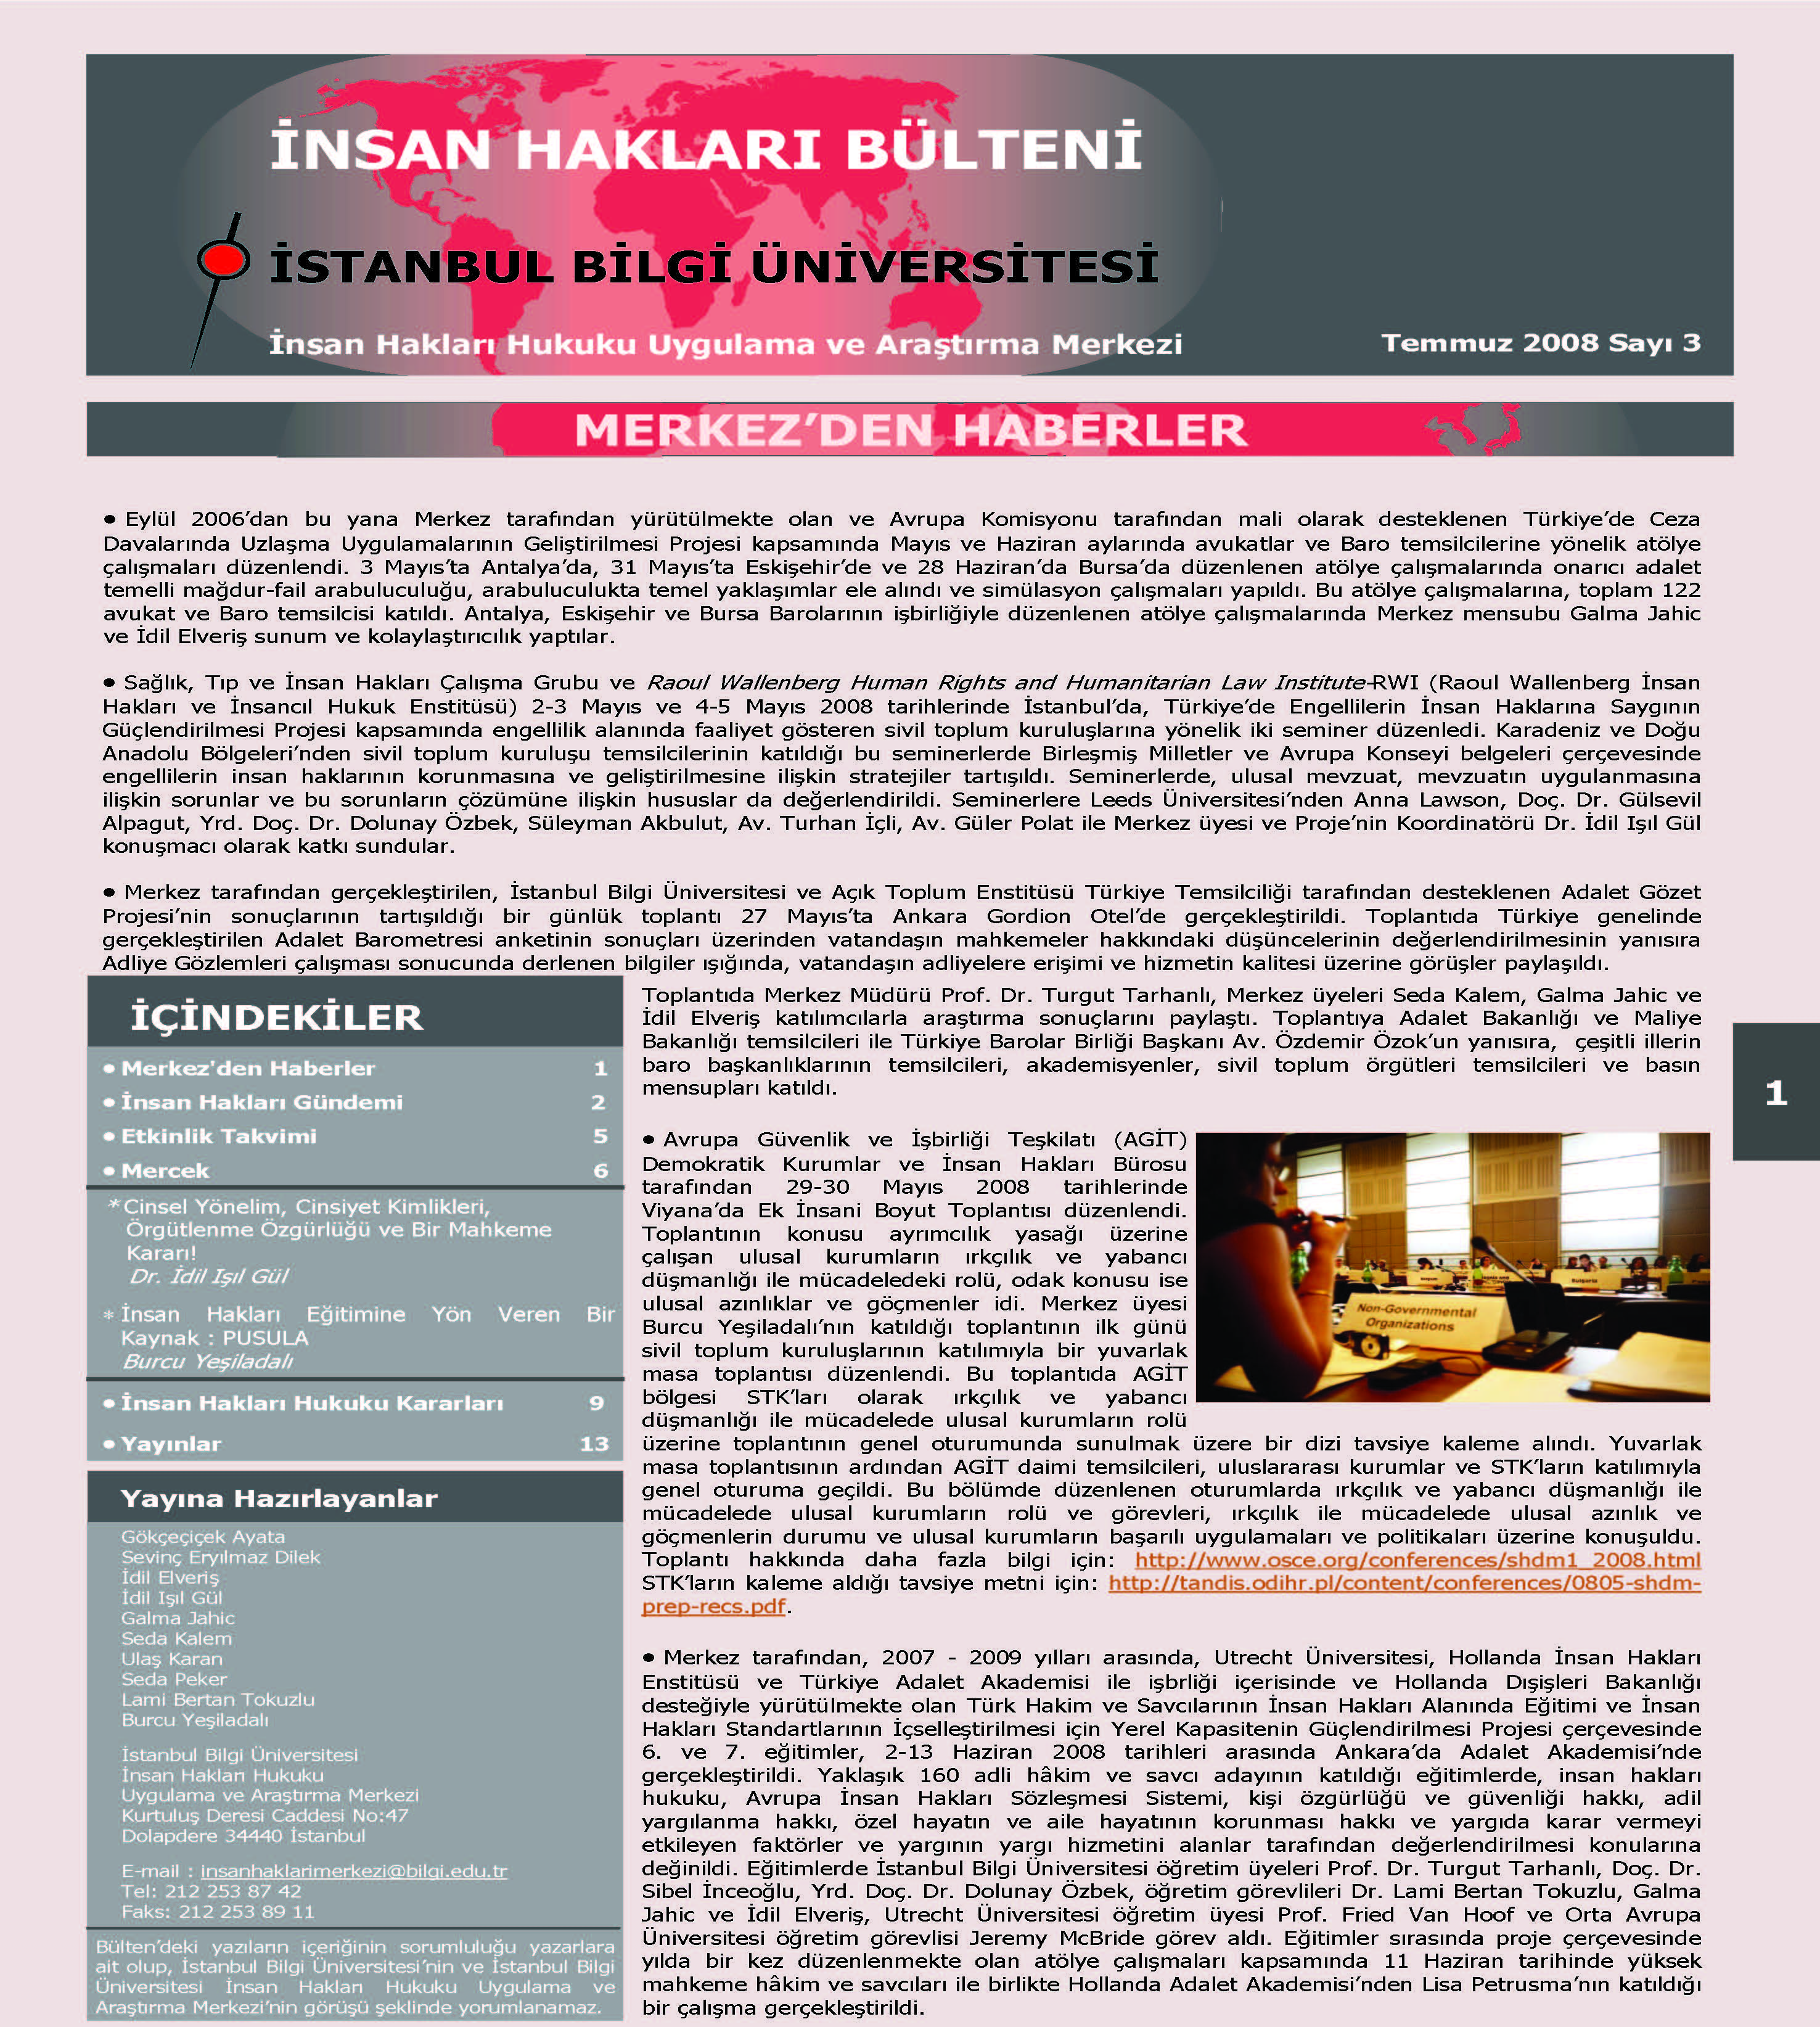 Human Rights Bulletin, July 2008, Issue 3